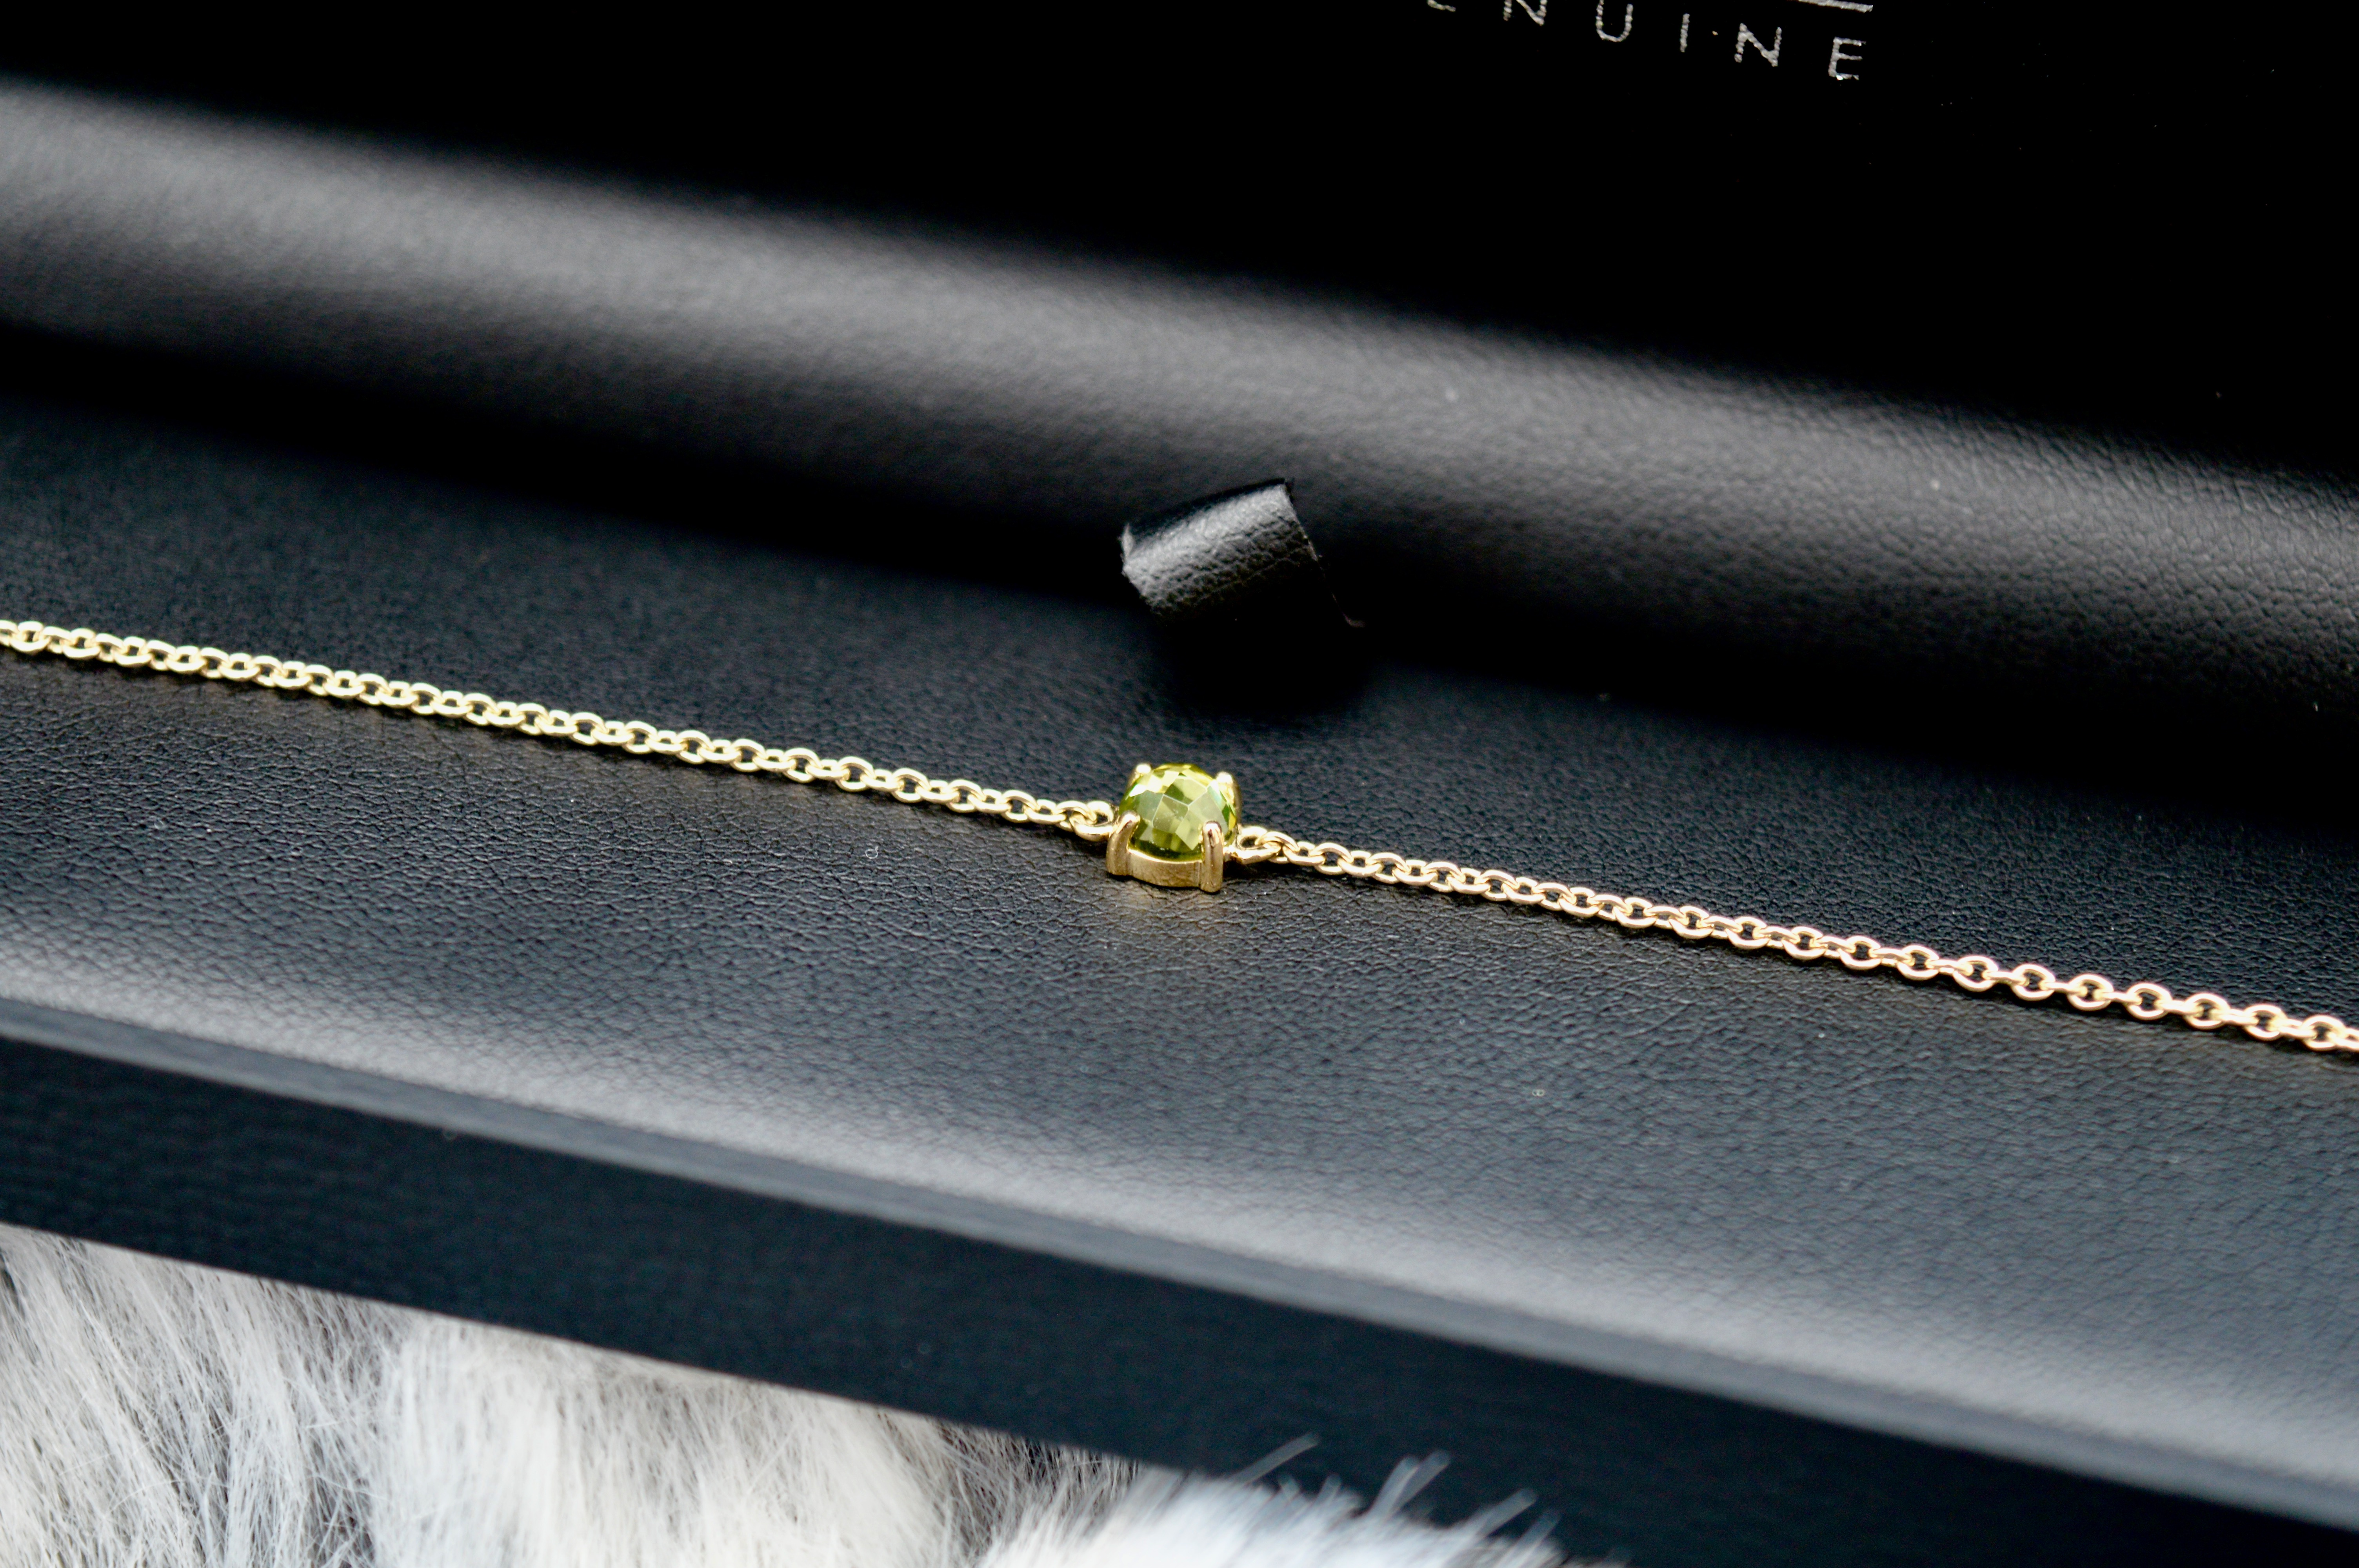 Gemondo Gold and Peridot August Birthstone Bracelet | Memorable Gift | Christmas Gift Guide - What to buy your Grandma | Elle Blonde Luxury Lifestyle Destination Blog